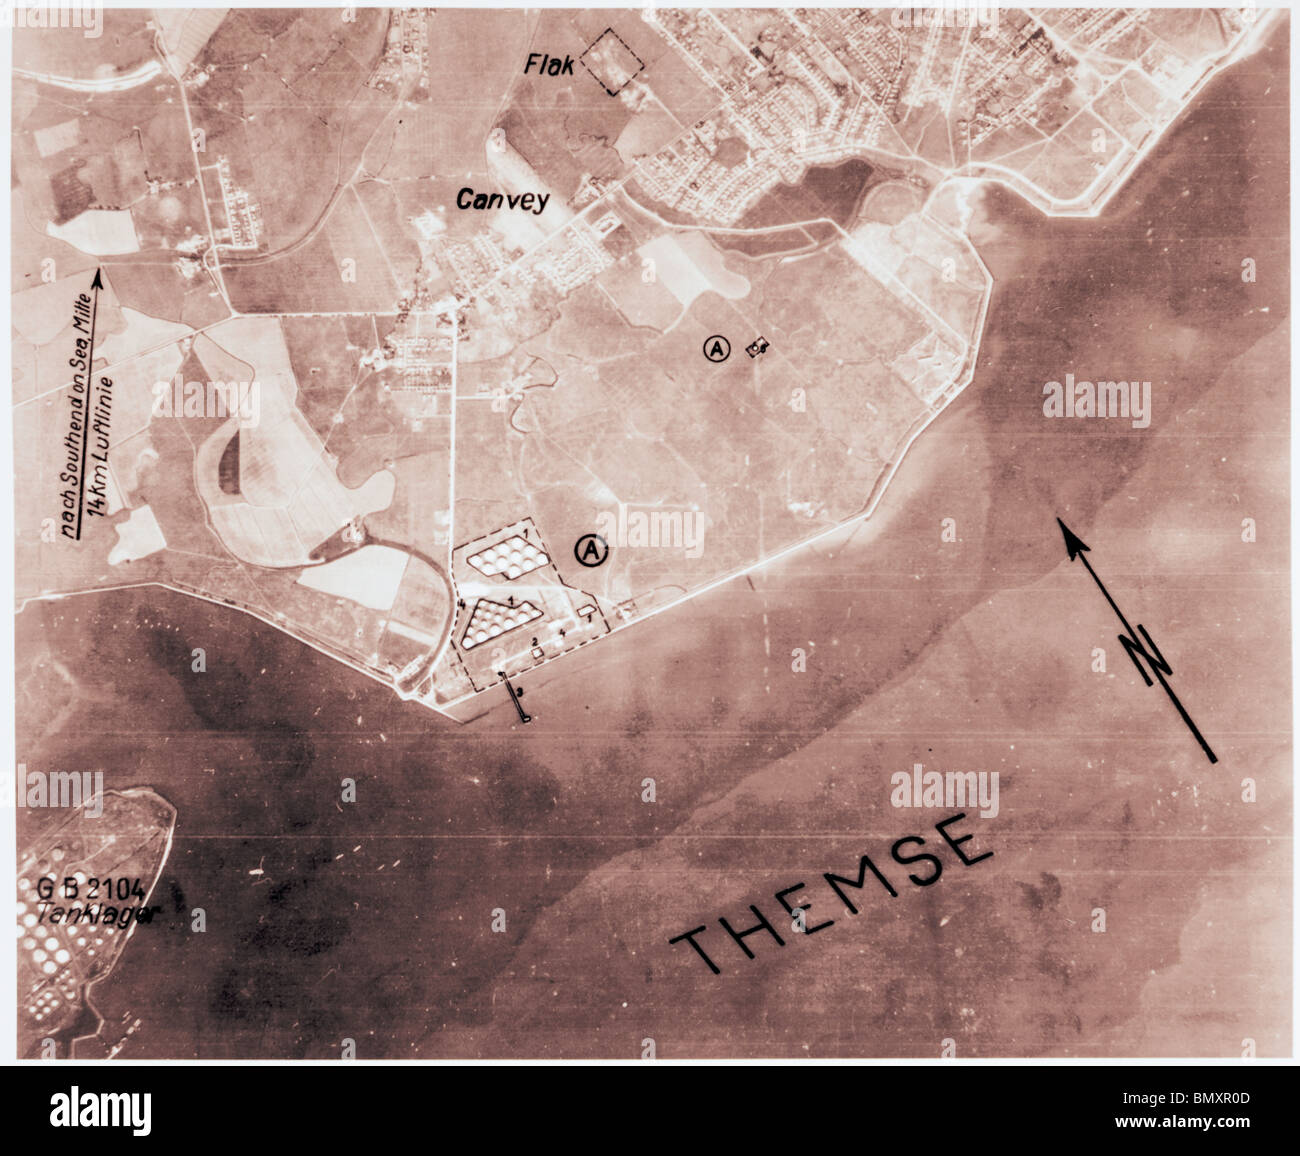 Canvey Island - Essex 1940 Chemical Storage Tanks & Fortifications - Stock Image